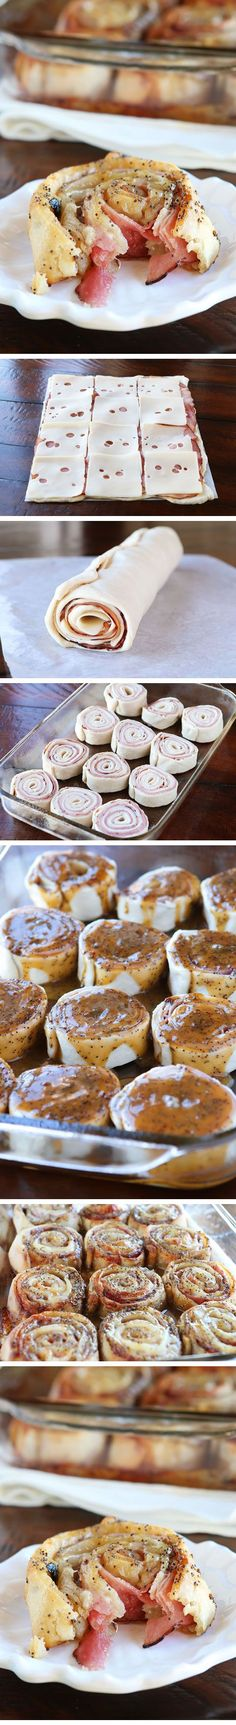 Hot Ham & Cheese Party Rolls with a Brown Sugar Poppy Seed Glaze. Perfect for taking to friends, new moms, and family because you can assemble it the night before and bake it the next day.